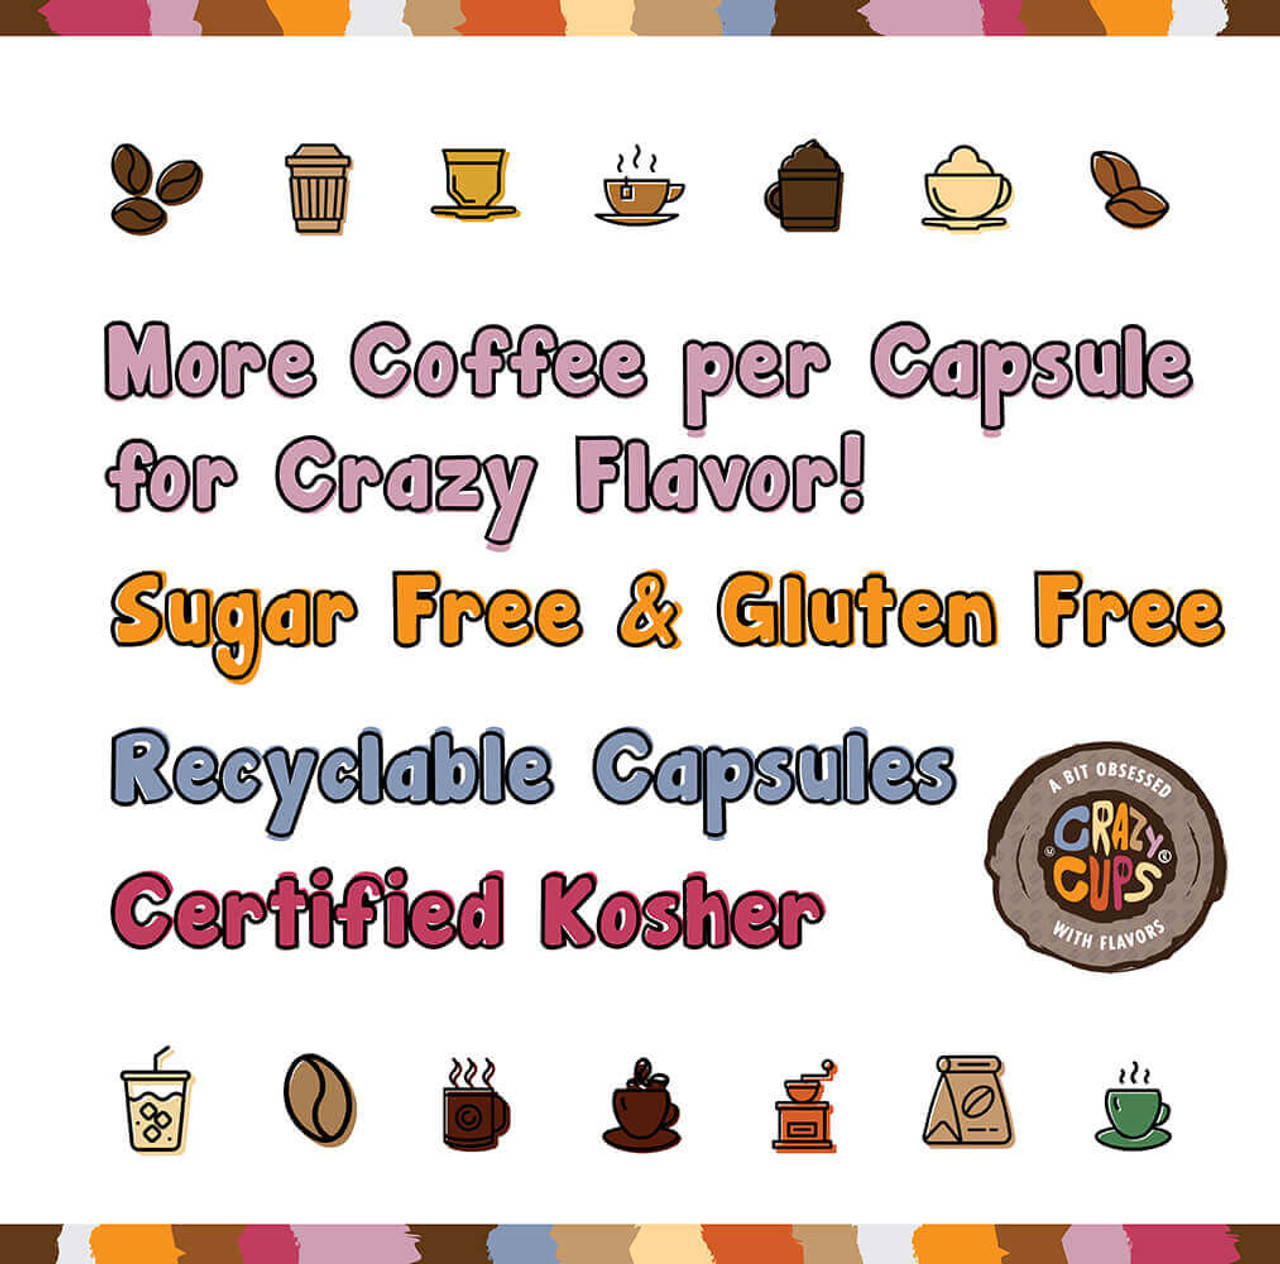 Decaf Frosted Oatmeal Cookie Flavored Coffee by Crazy Cups